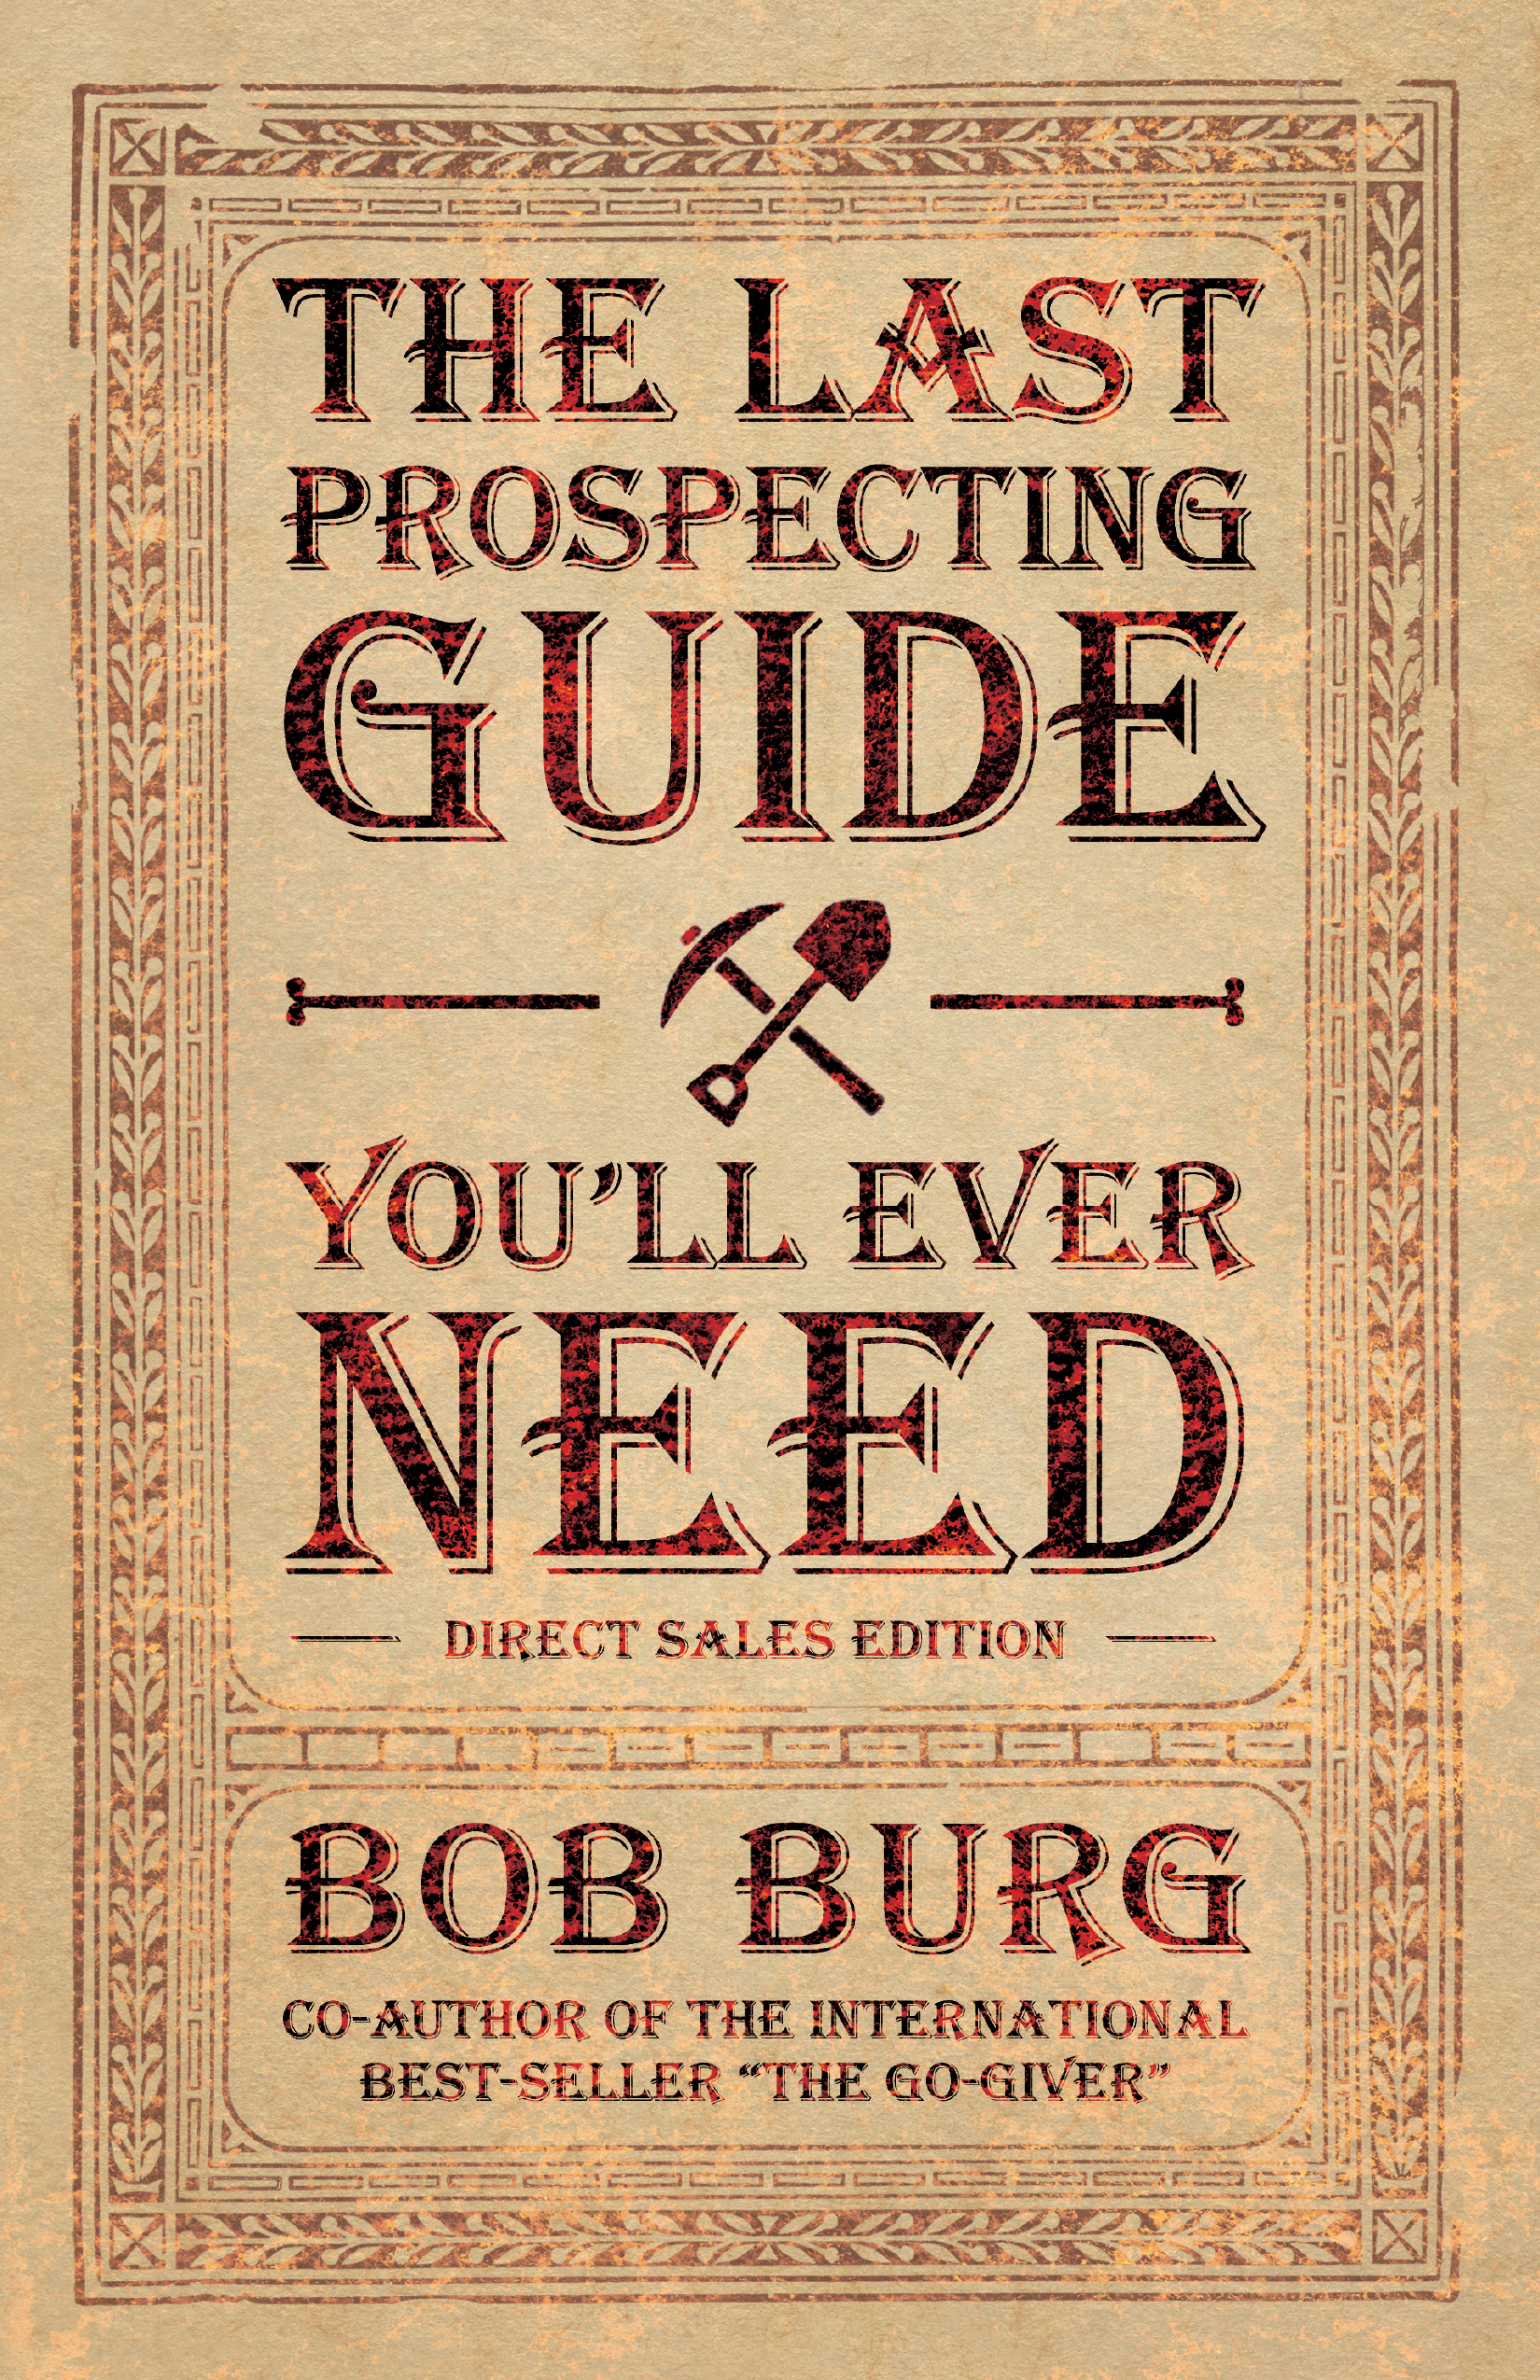 The Last Prospecting Guide You'll Ever Need - By bob burg